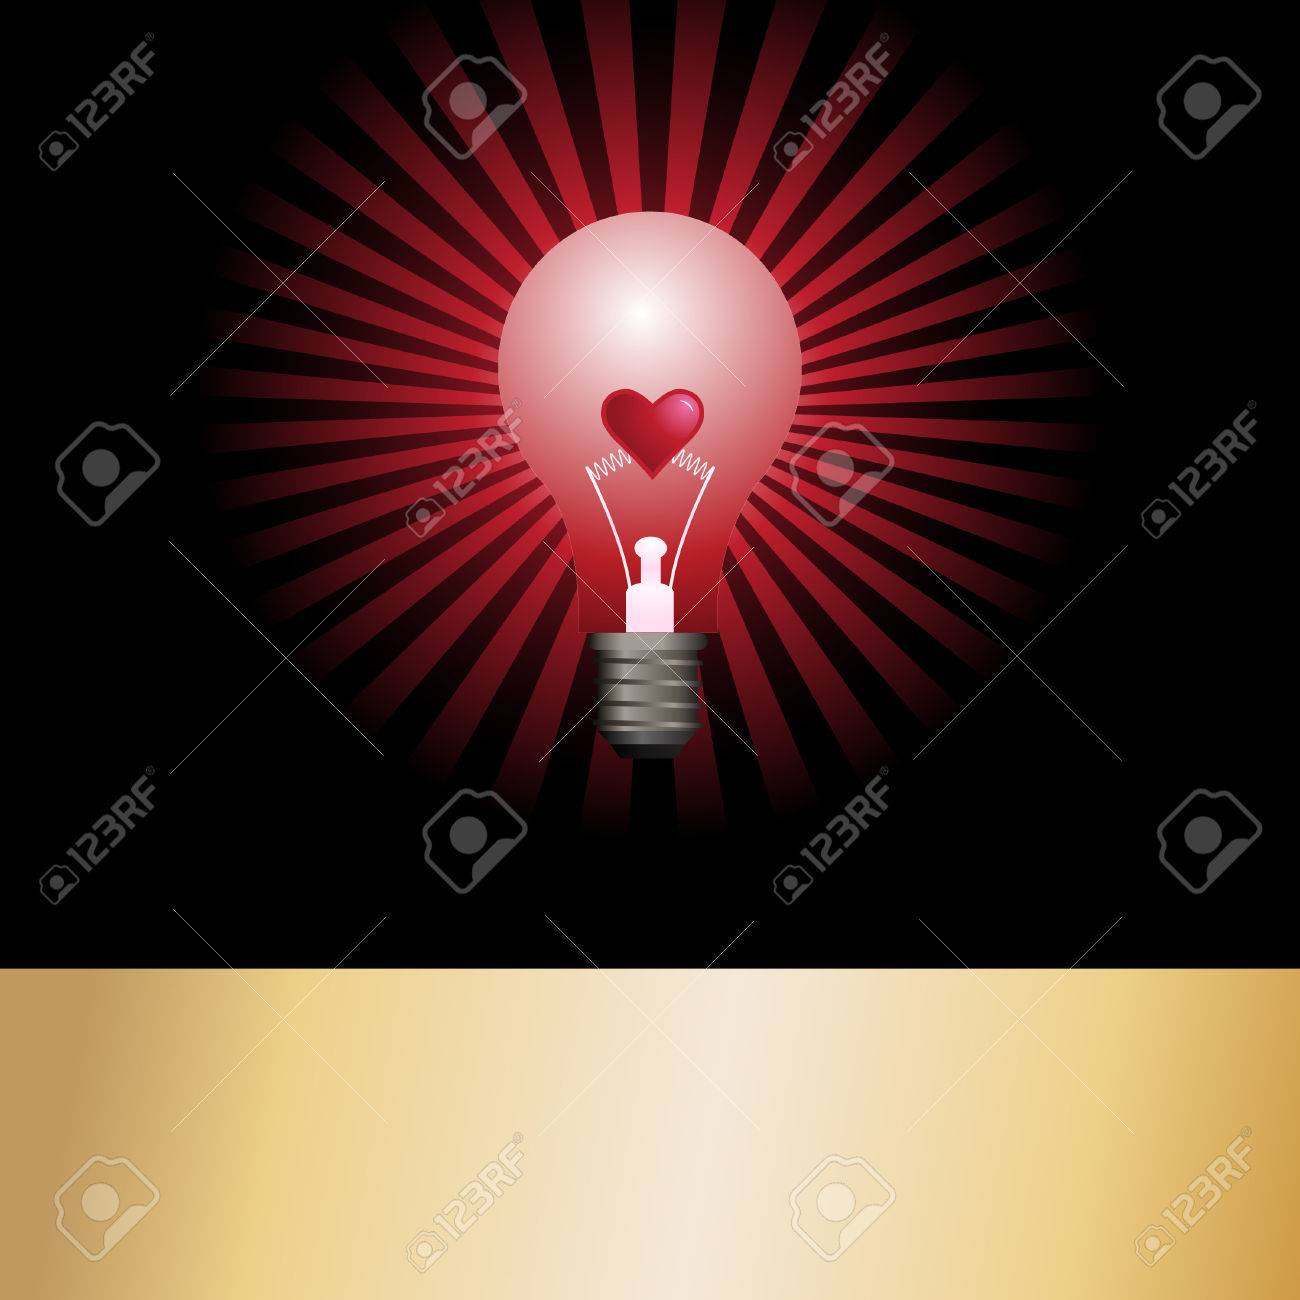 Vector - Bright And Glowing Light Bulb With Star Burst Effect ...:Vector - Vector - Bright and glowing light bulb with star burst effect and  a valentine heart in the center as the filament. Concept: Heated passion.,Lighting